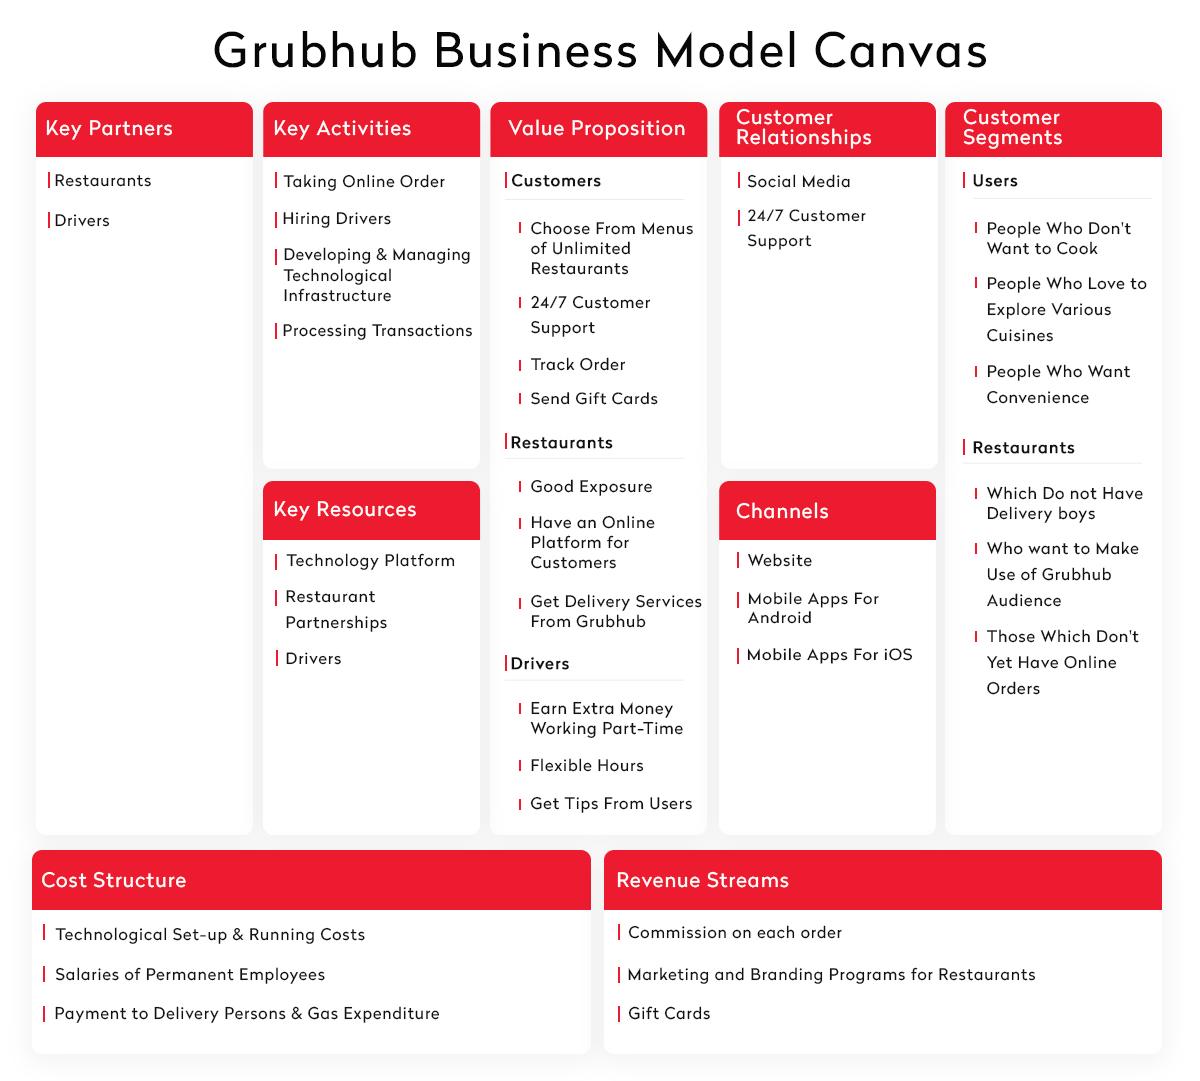 Grubhub Business Model Canvas